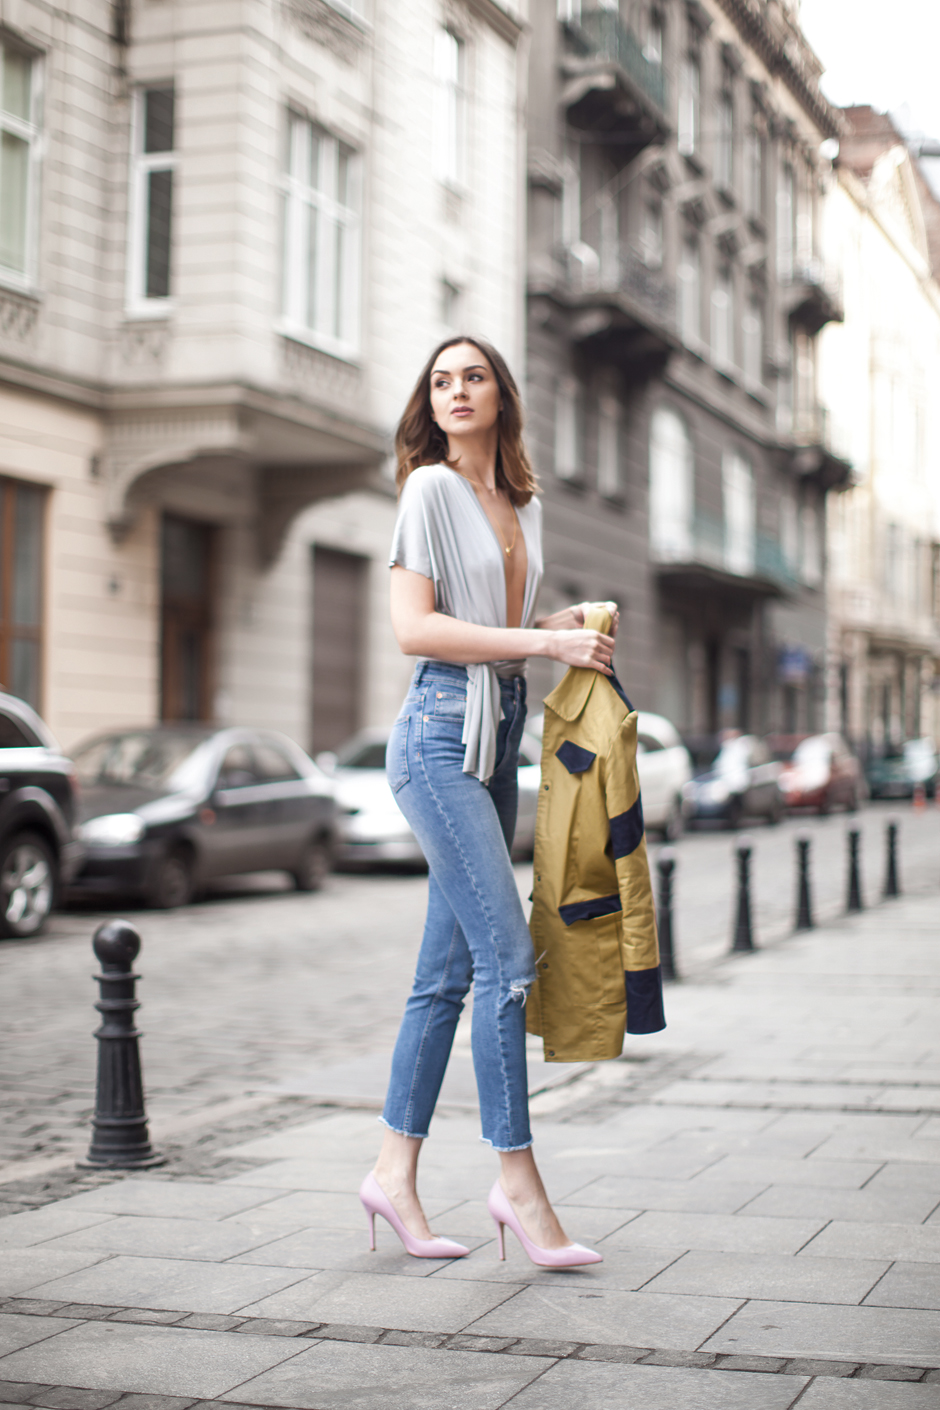 street-style-outfit-multiway-bodysuit-outfit